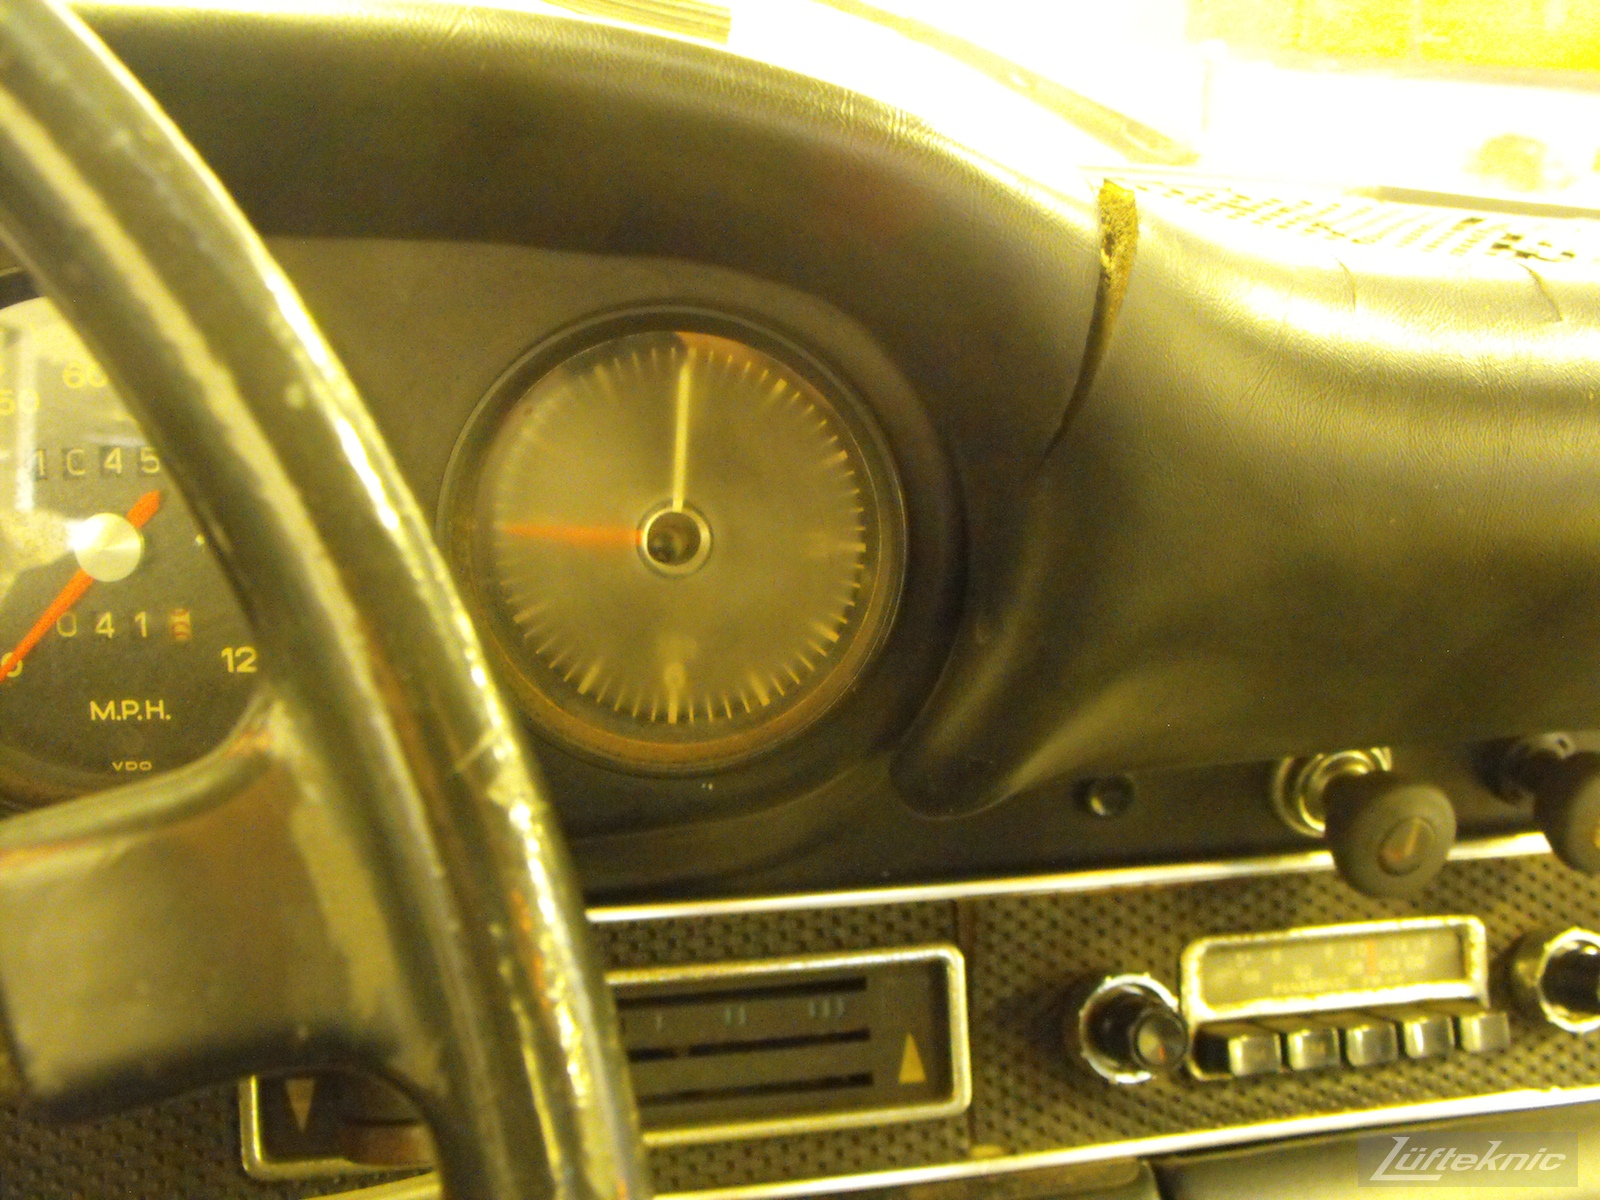 A close up of an aged clock and cracked dash of an Irish Green Porsche 912 undergoing restoration at Lufteknic.